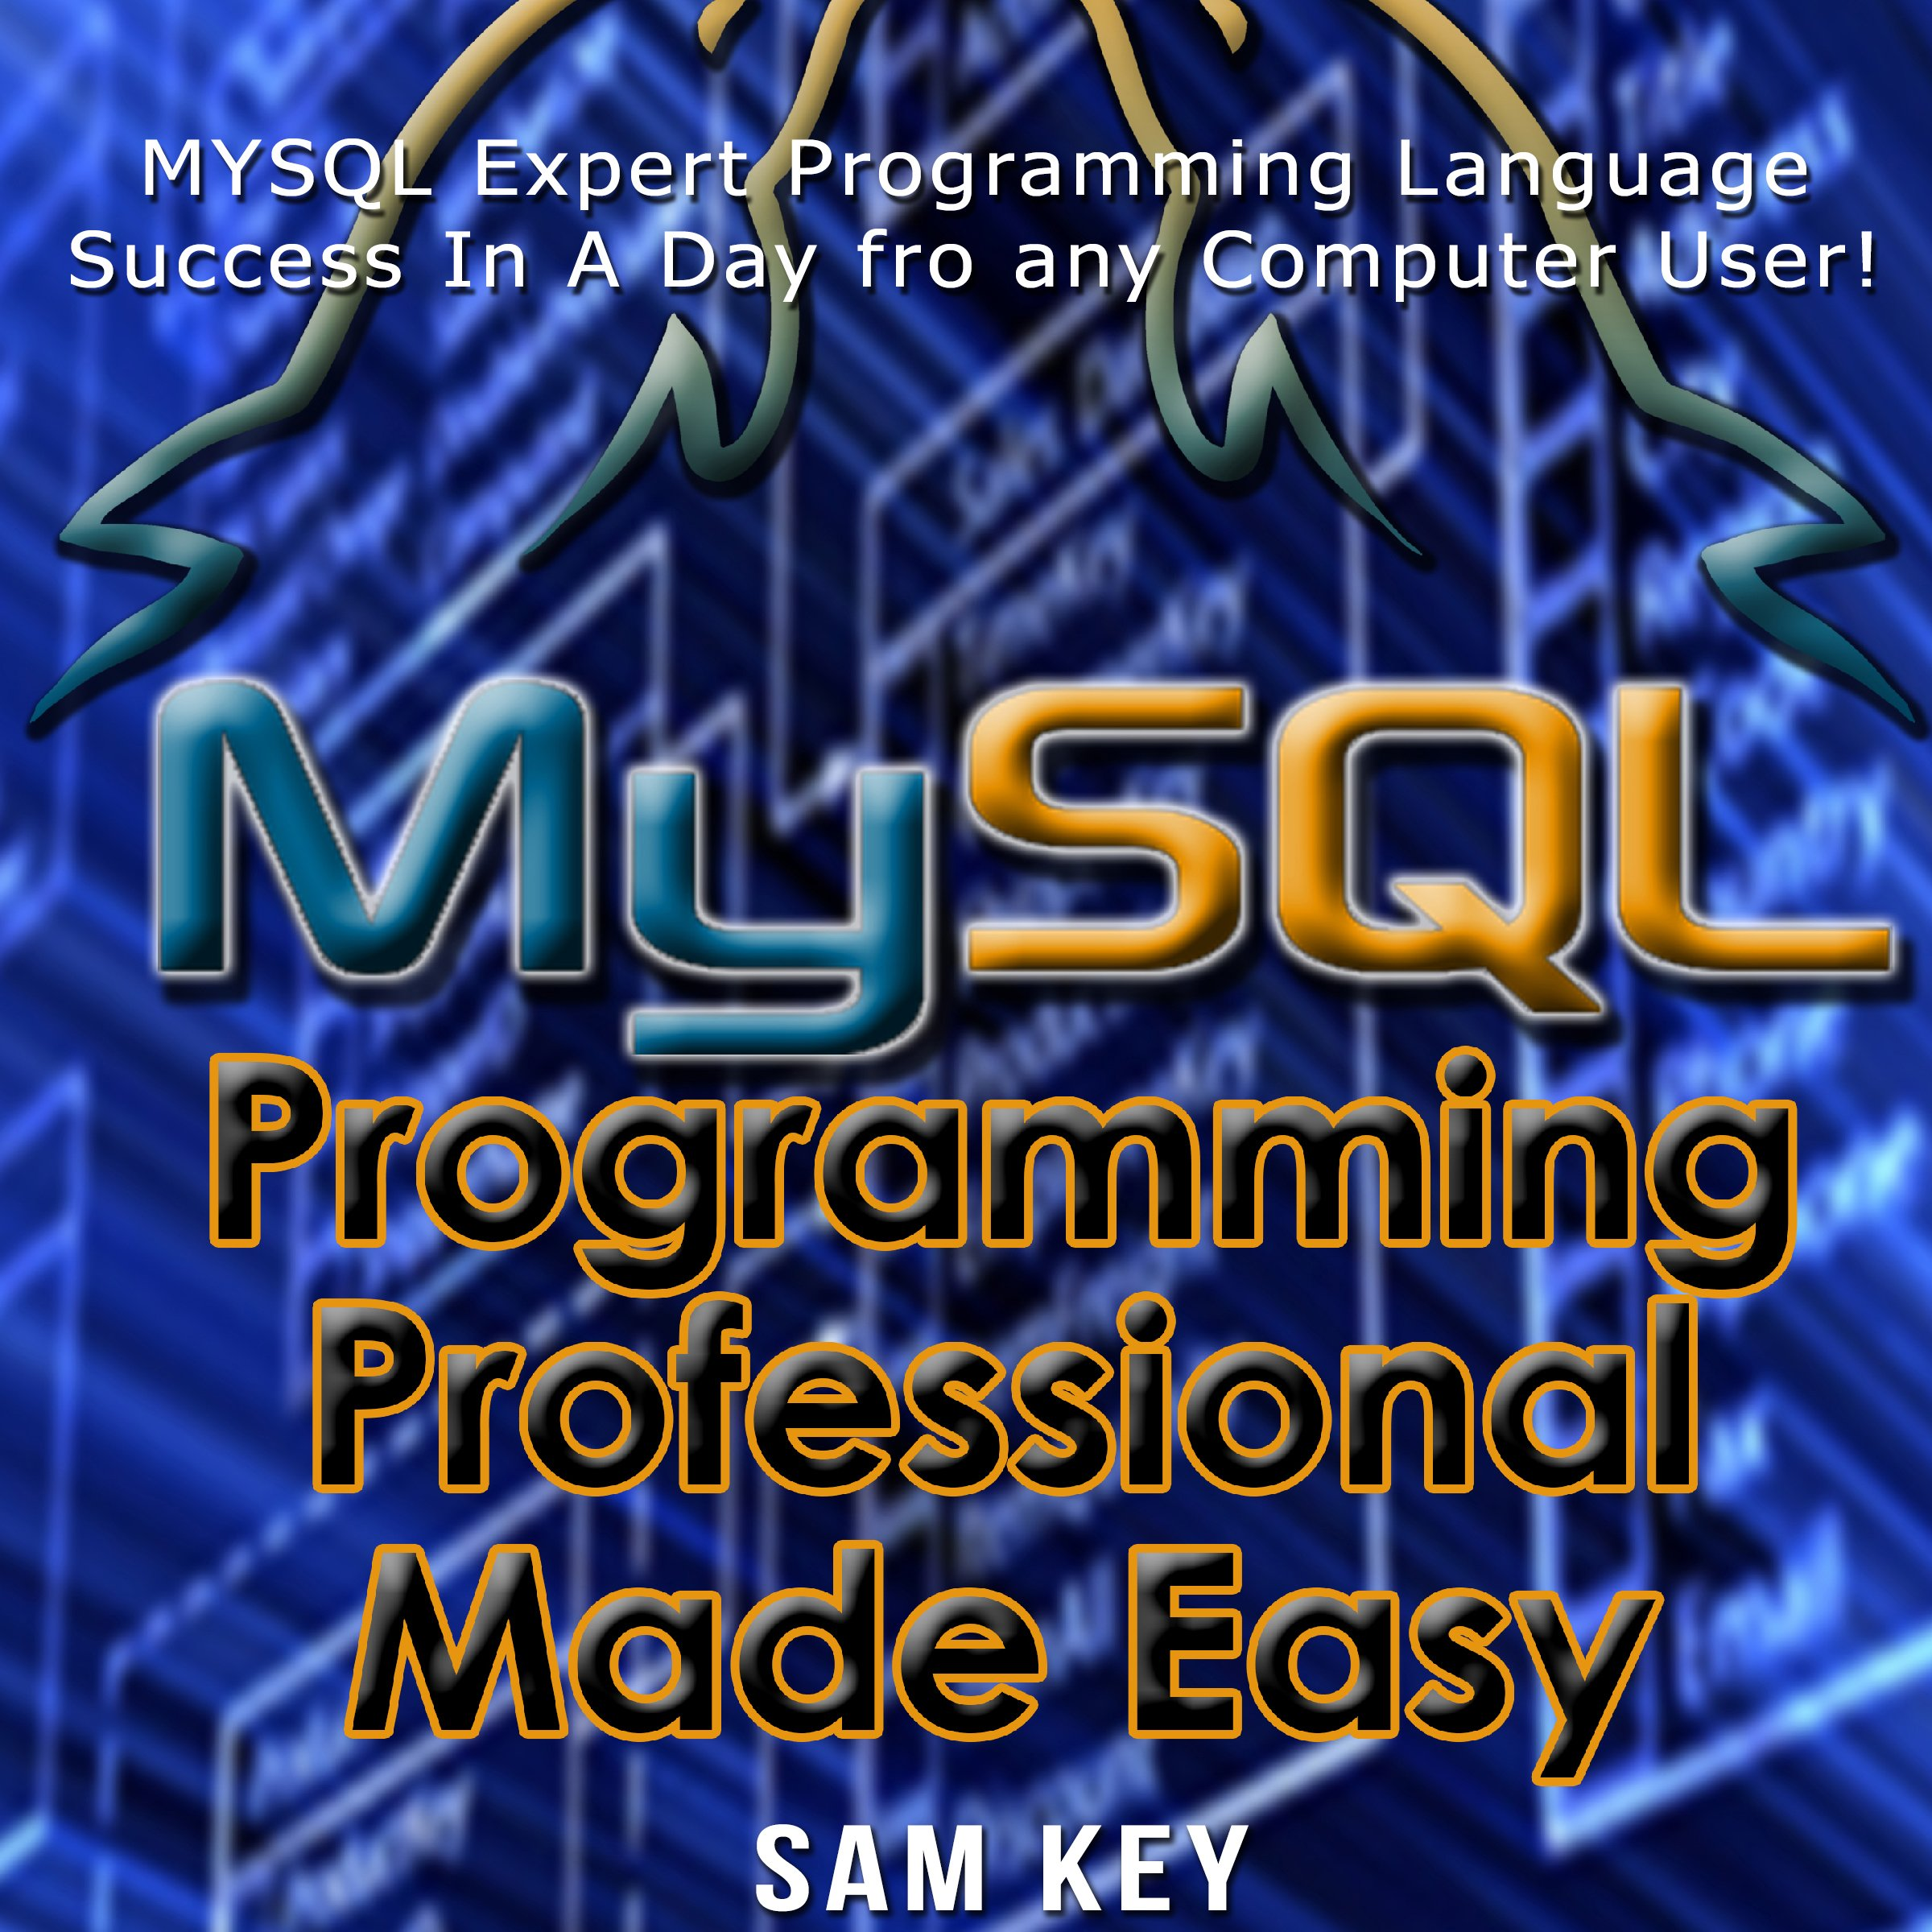 MYSQL Programming Professional Made Easy, 2nd Edition: Expert MYSQL Programming Language Success in a Day for Any Computer User!